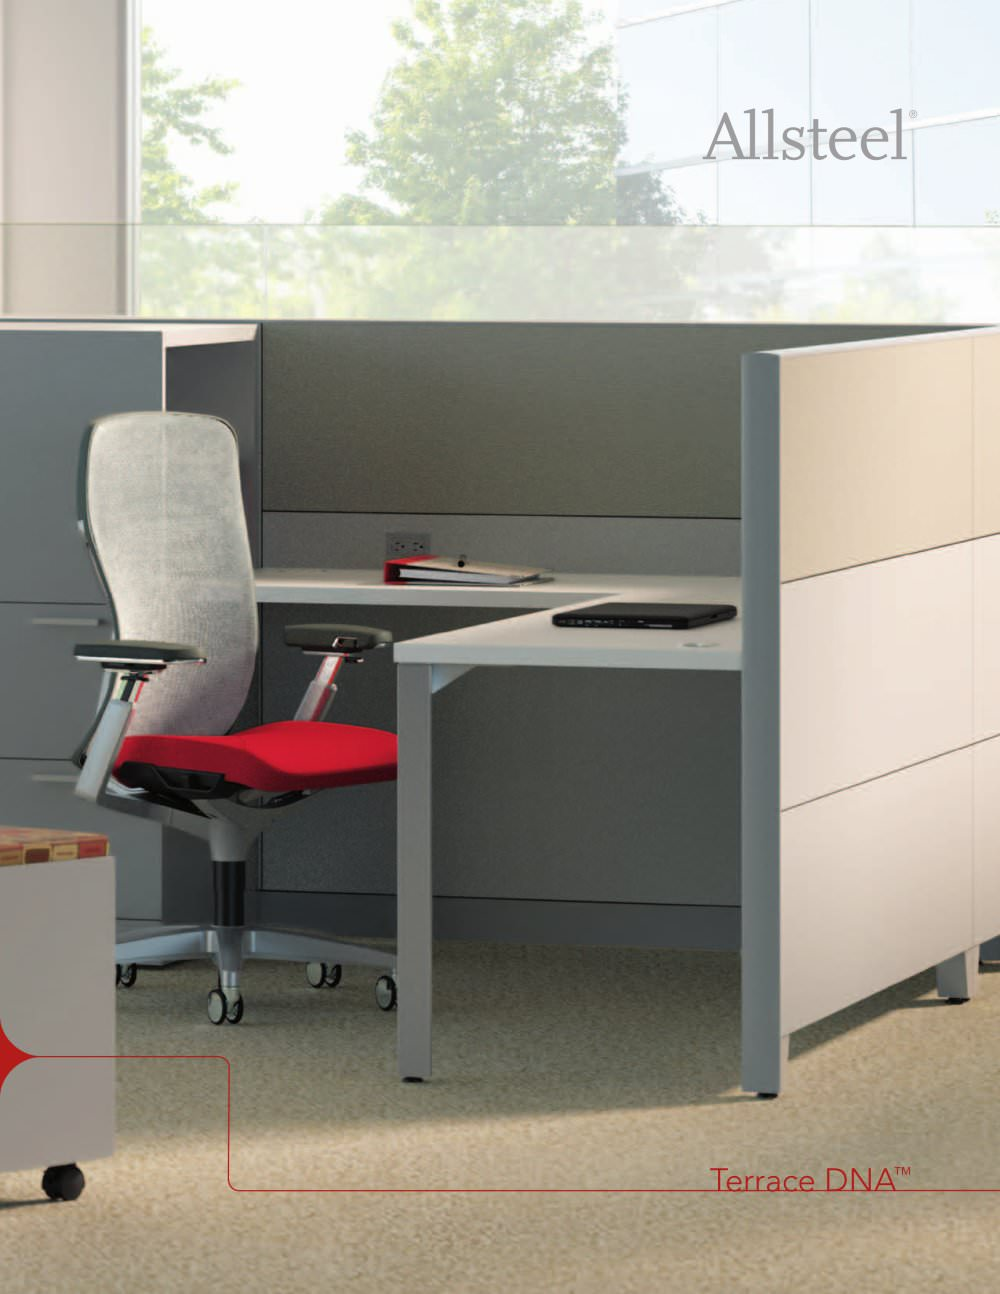 allsteel access chair instructions grosfillex bahia chaise lounge terrace dna brochure pdf catalogs documentation 1 16 pages